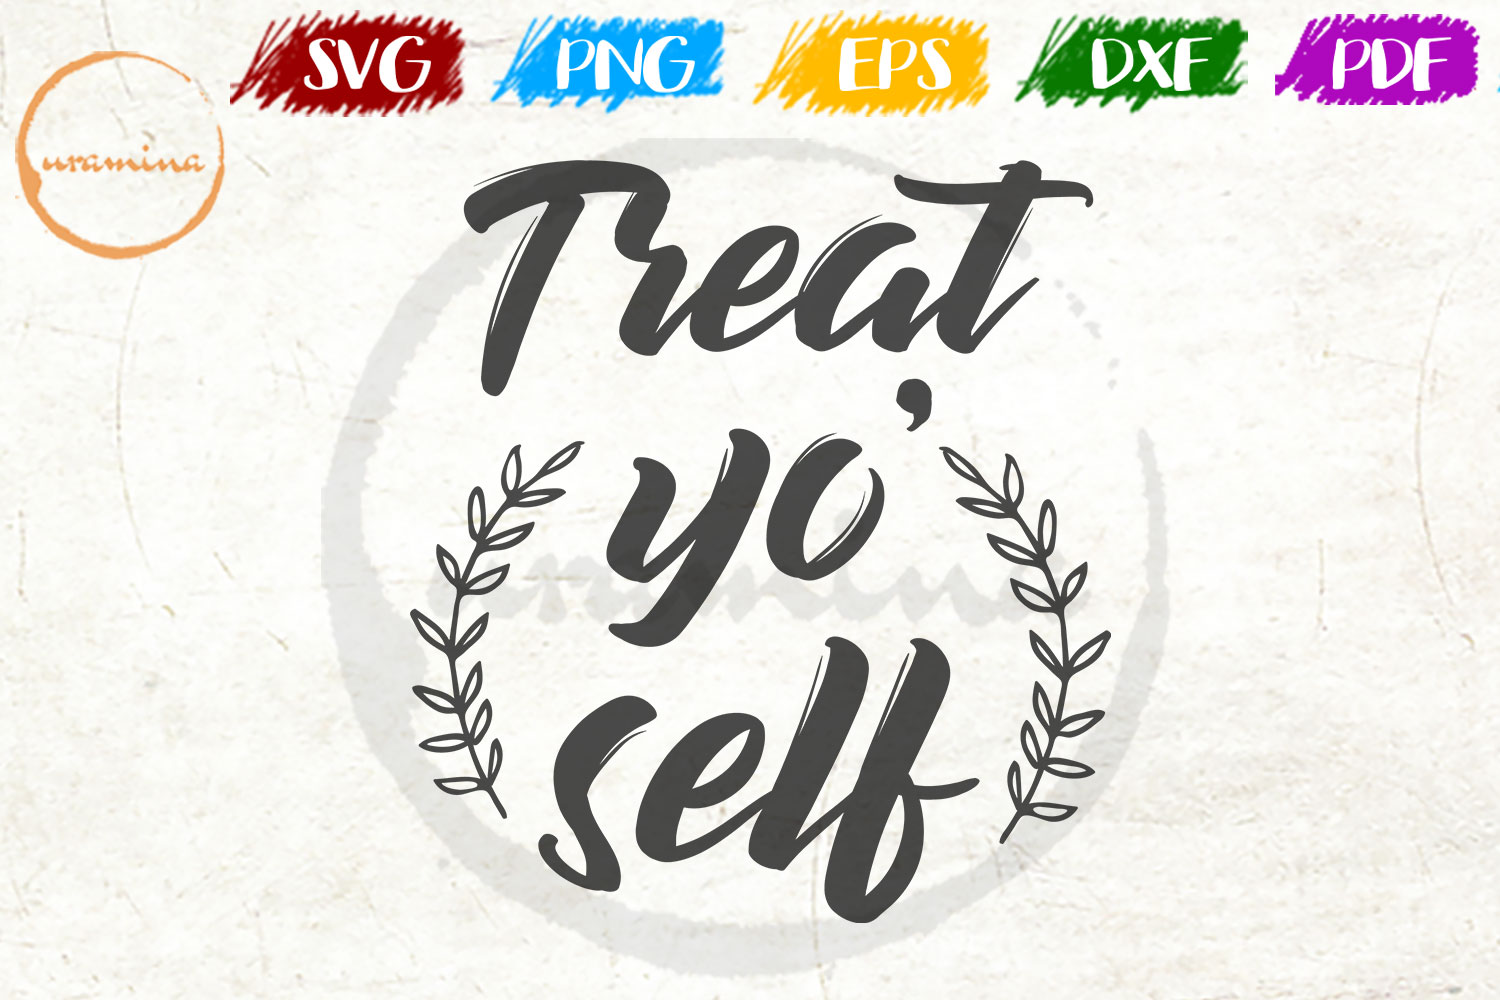 Download Free Treat Yo Self Graphic By Uramina Creative Fabrica for Cricut Explore, Silhouette and other cutting machines.